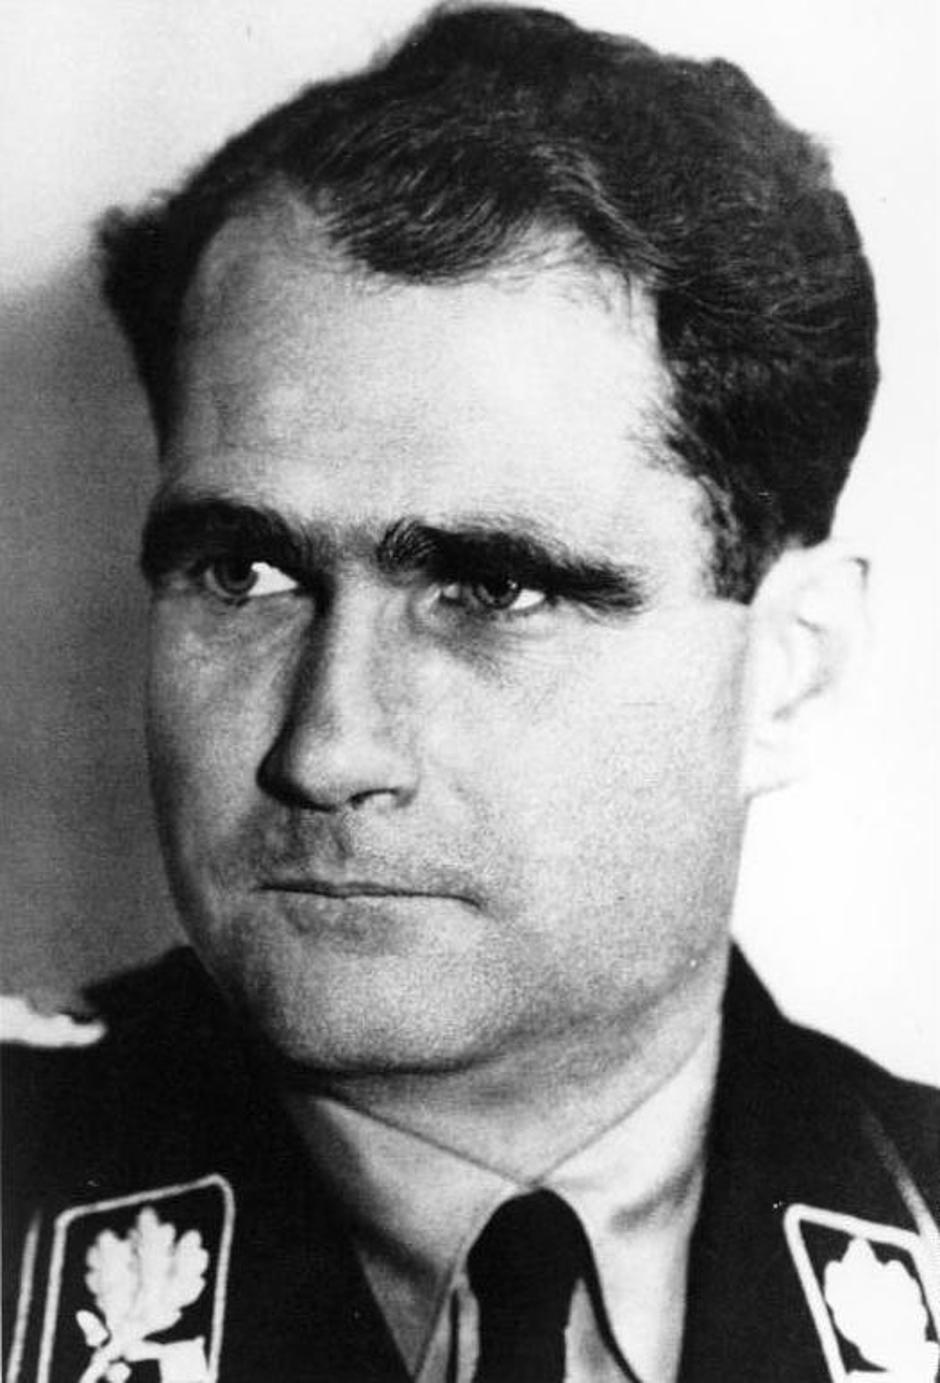 Rudolf Hess | Author: Wikipedia